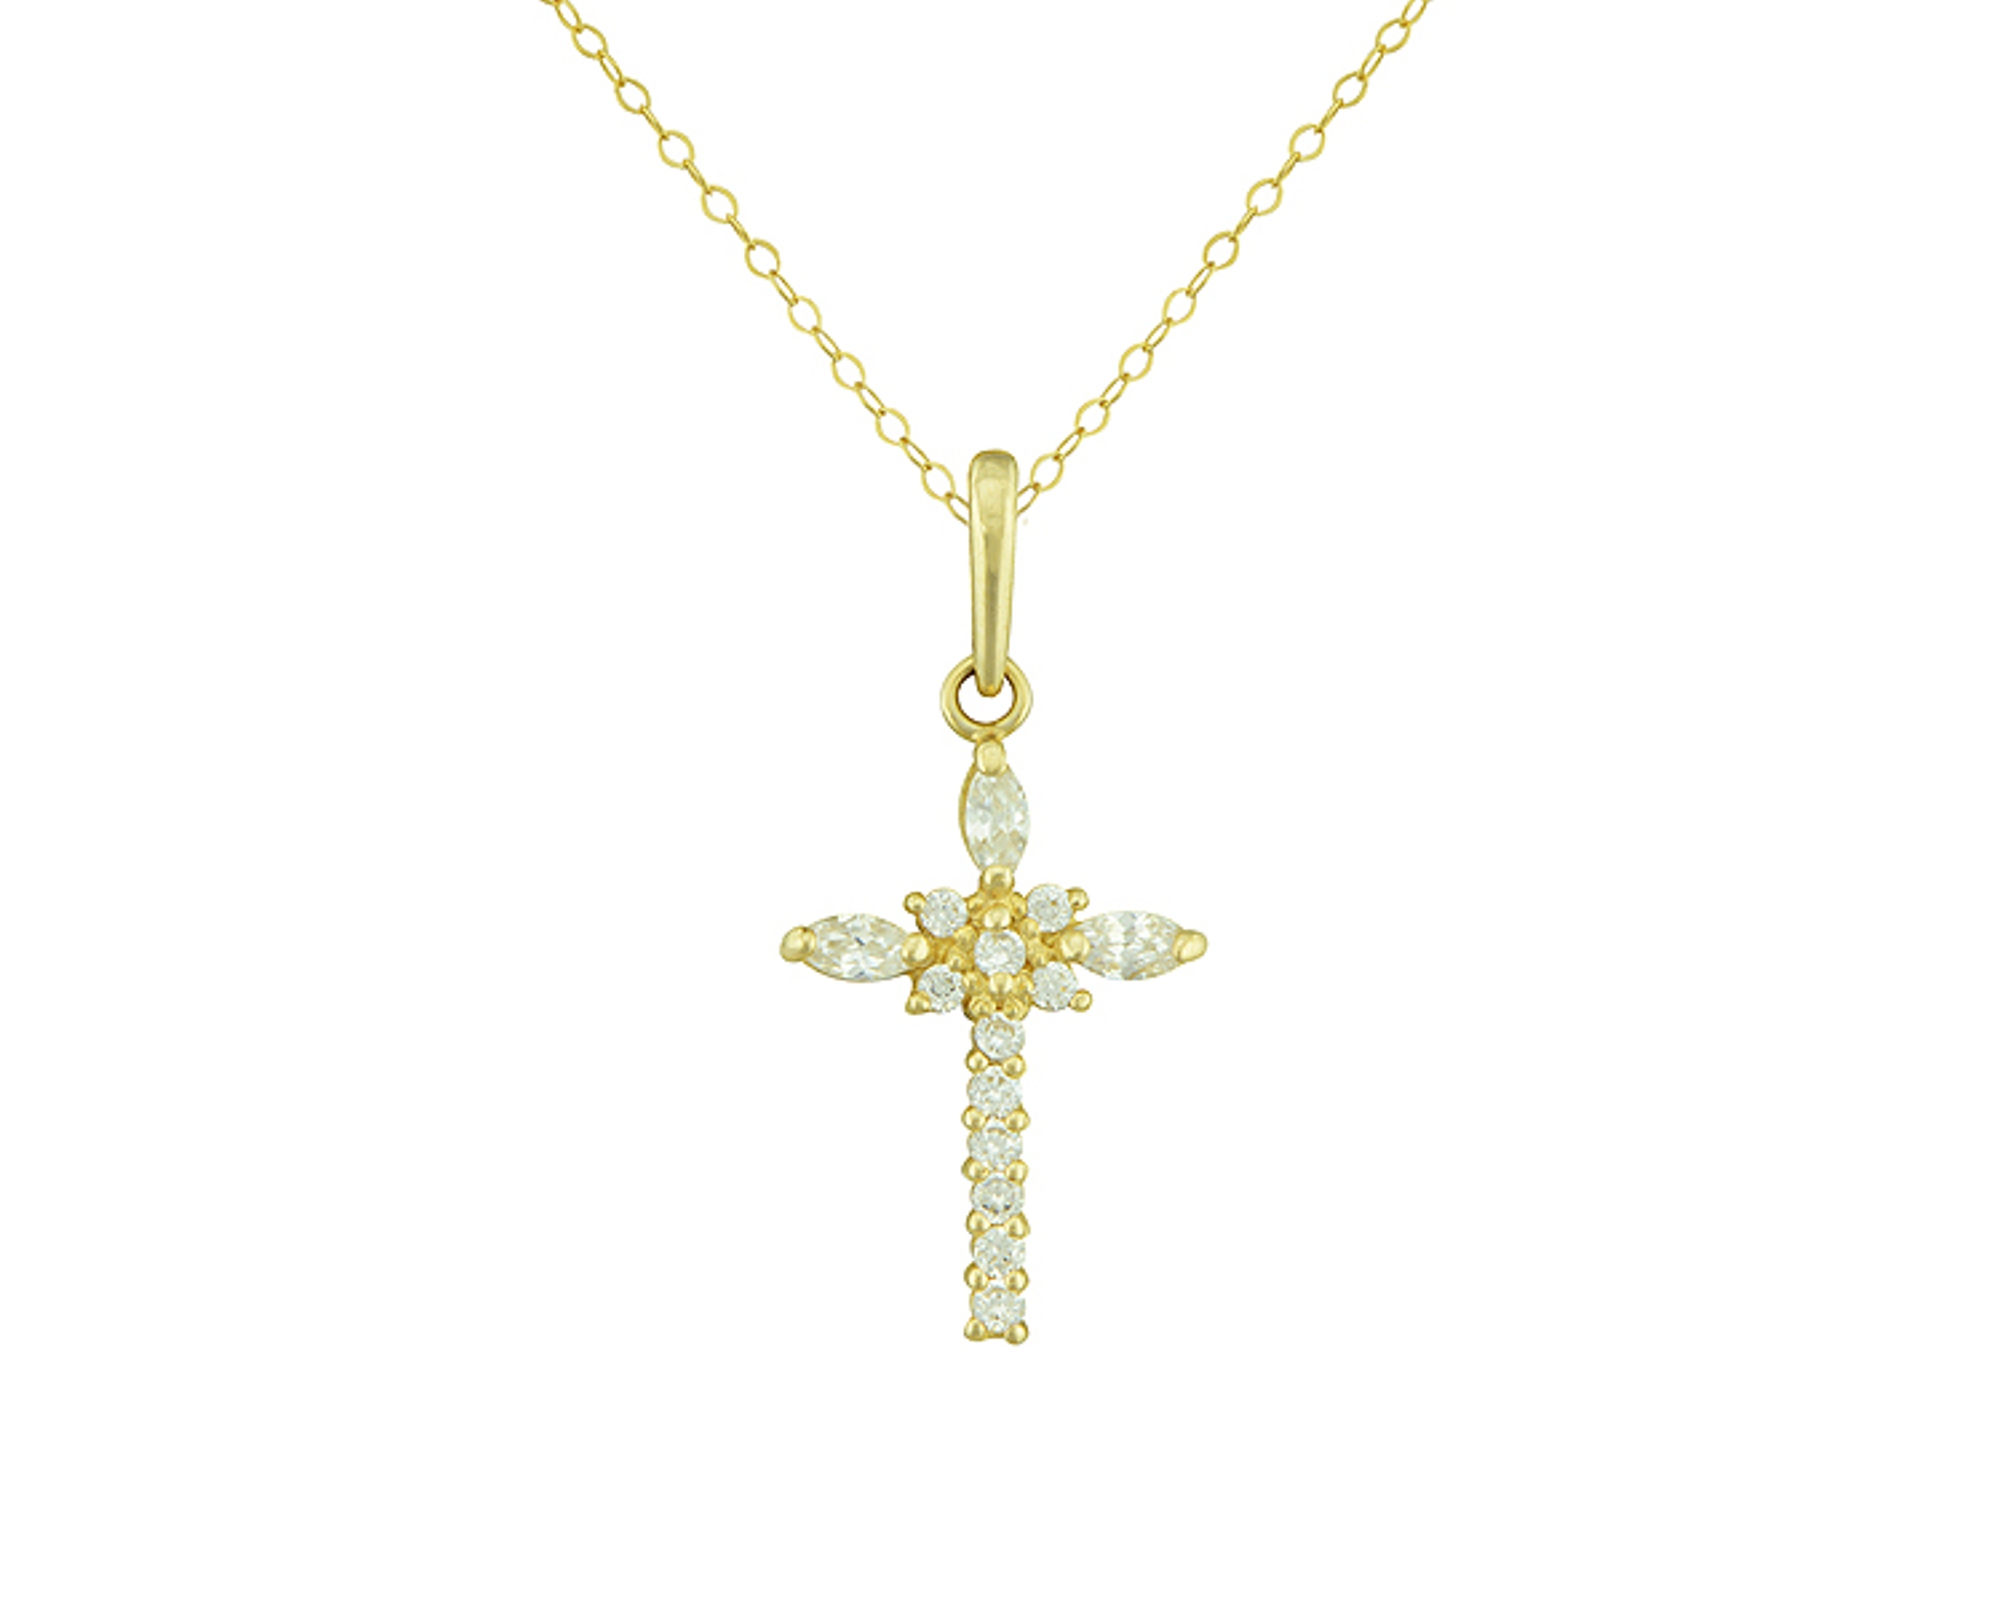 10K Cubic Zirconia Cross Pendant with Gold Filled Chain